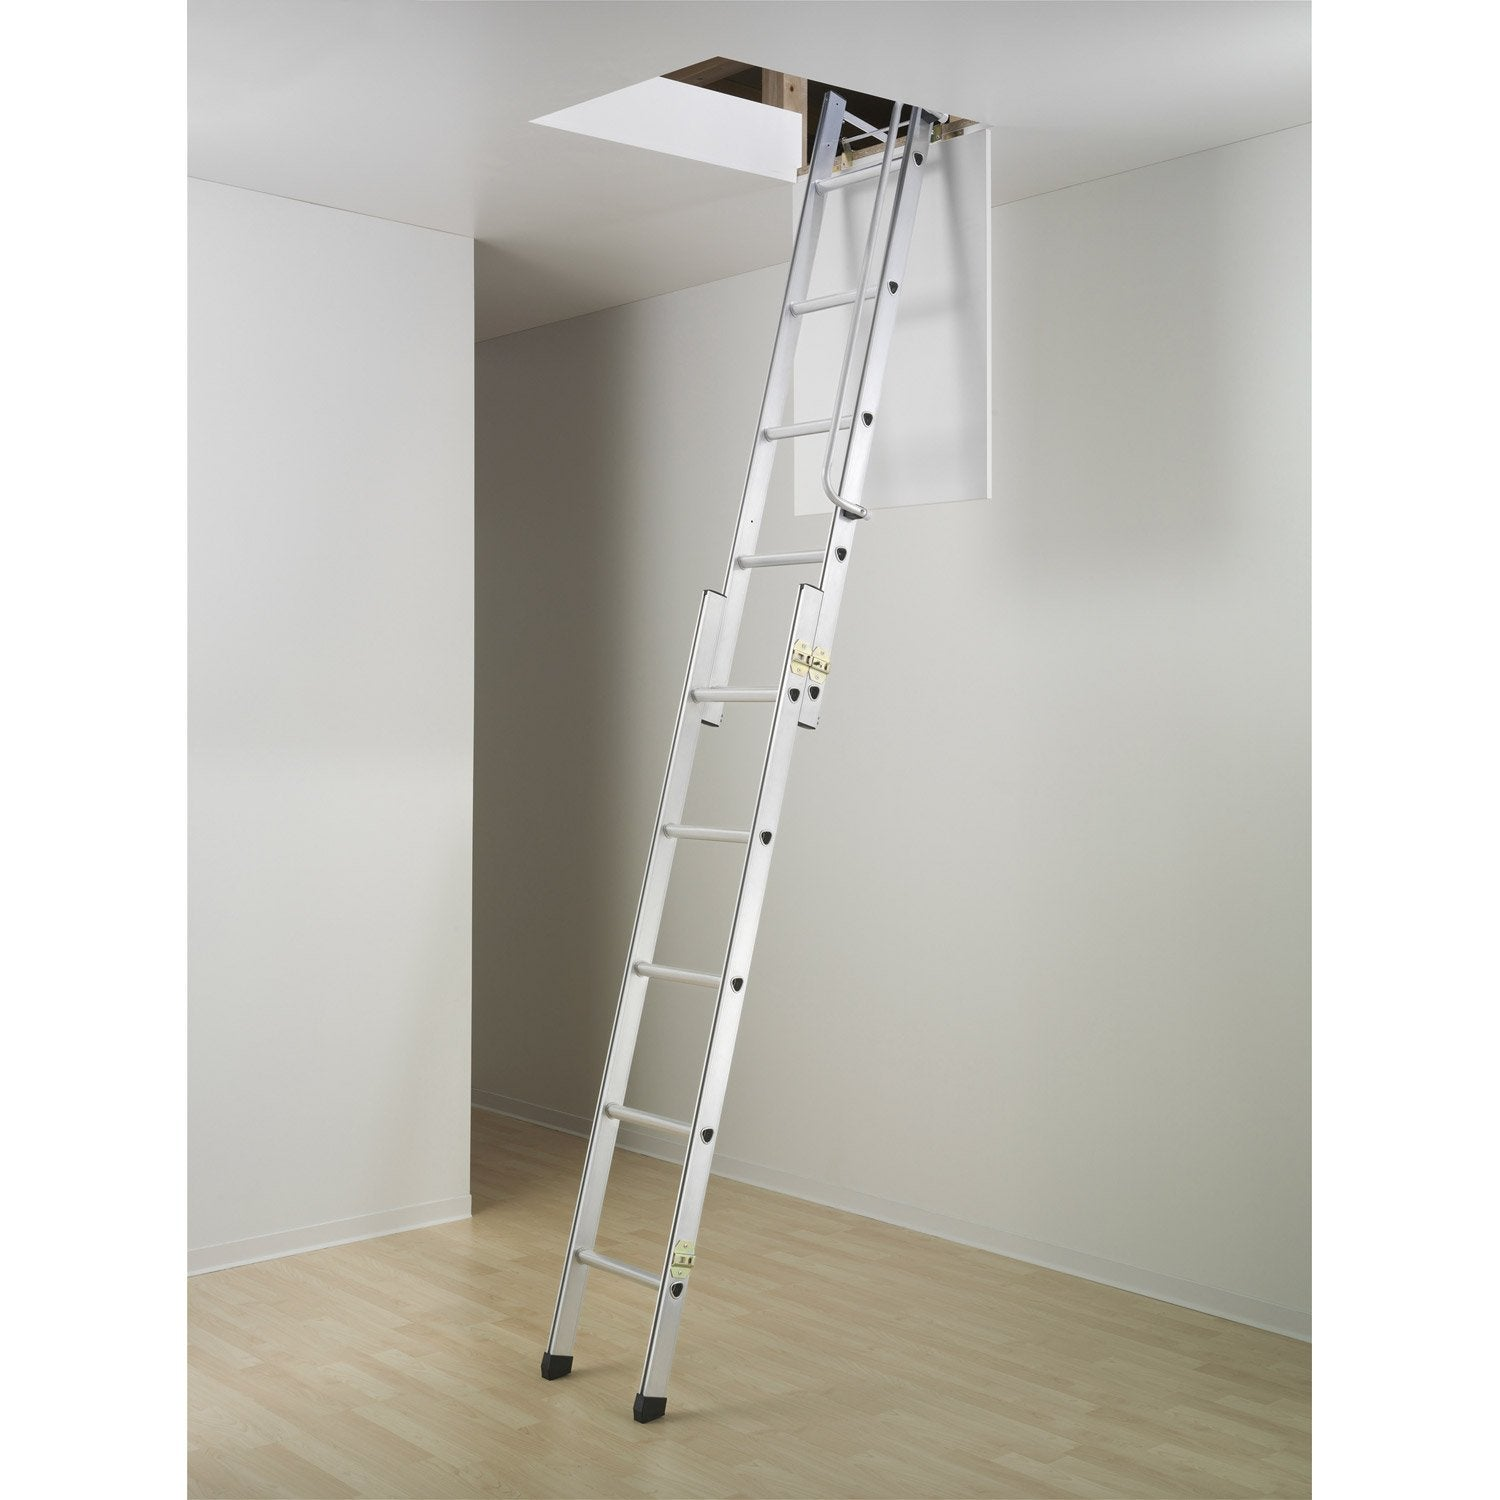 Brise vue retractable brico depot album with brise vue for Escalier escamotable brico